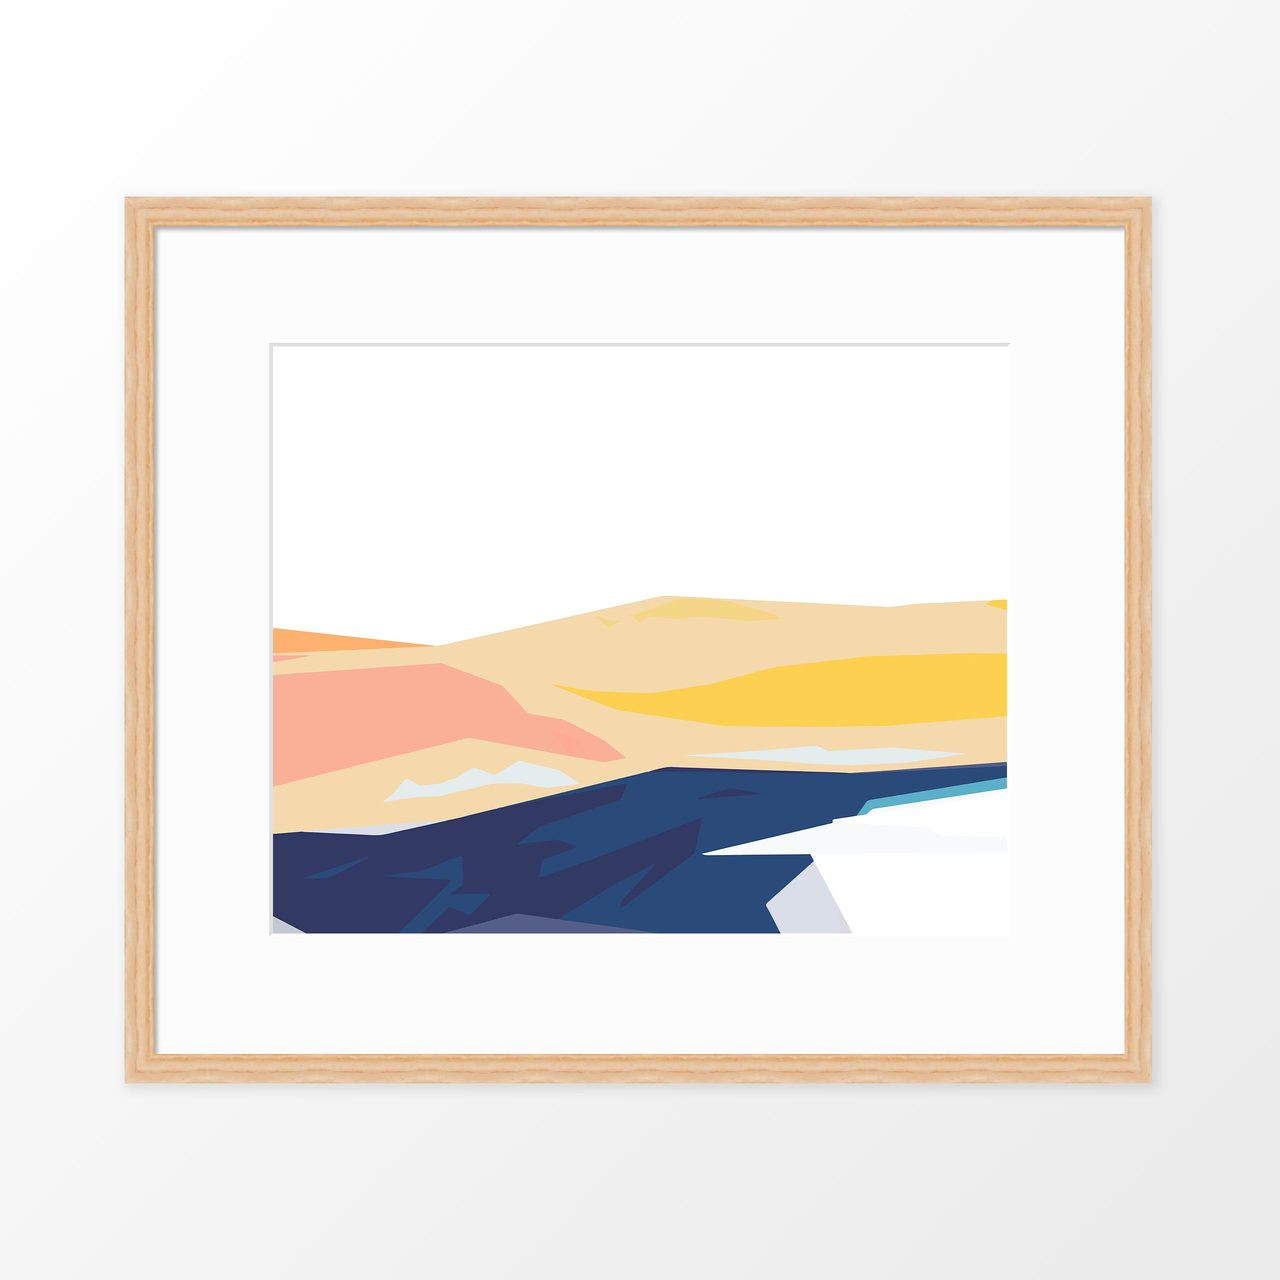 'Coastline II' Abstract Art Print from The Printed Home (Printable)